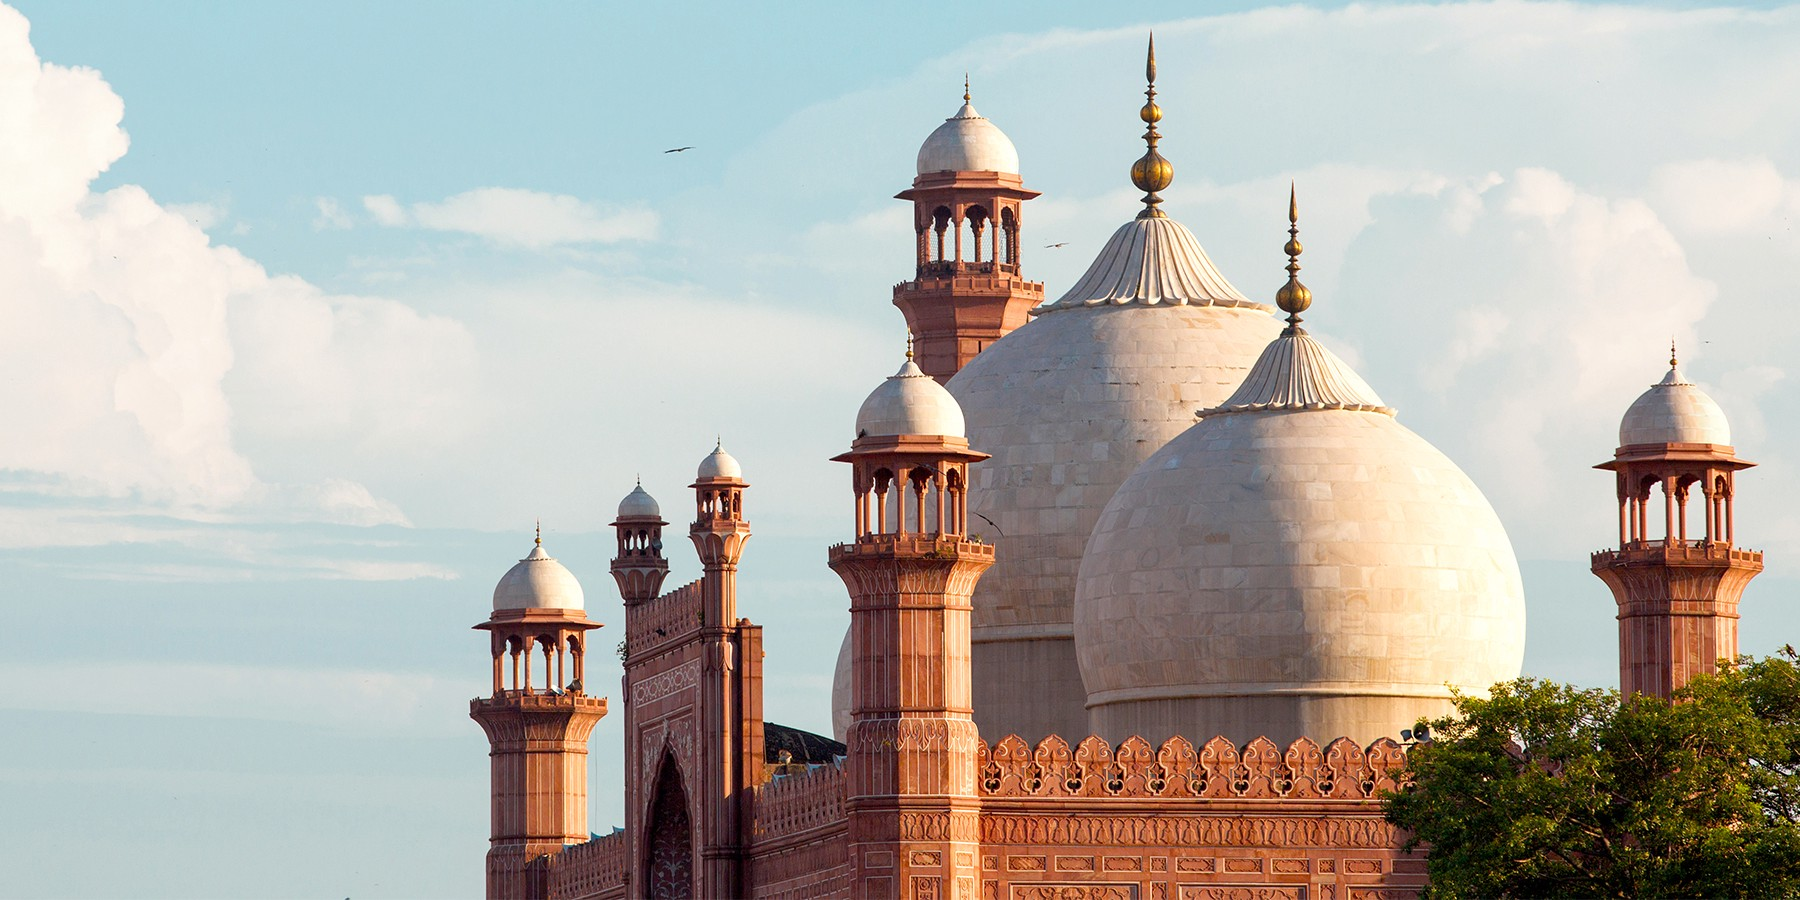 The minarets of the Badshahi Masjid; the iconic mosque located in Lahore, Pakistan.